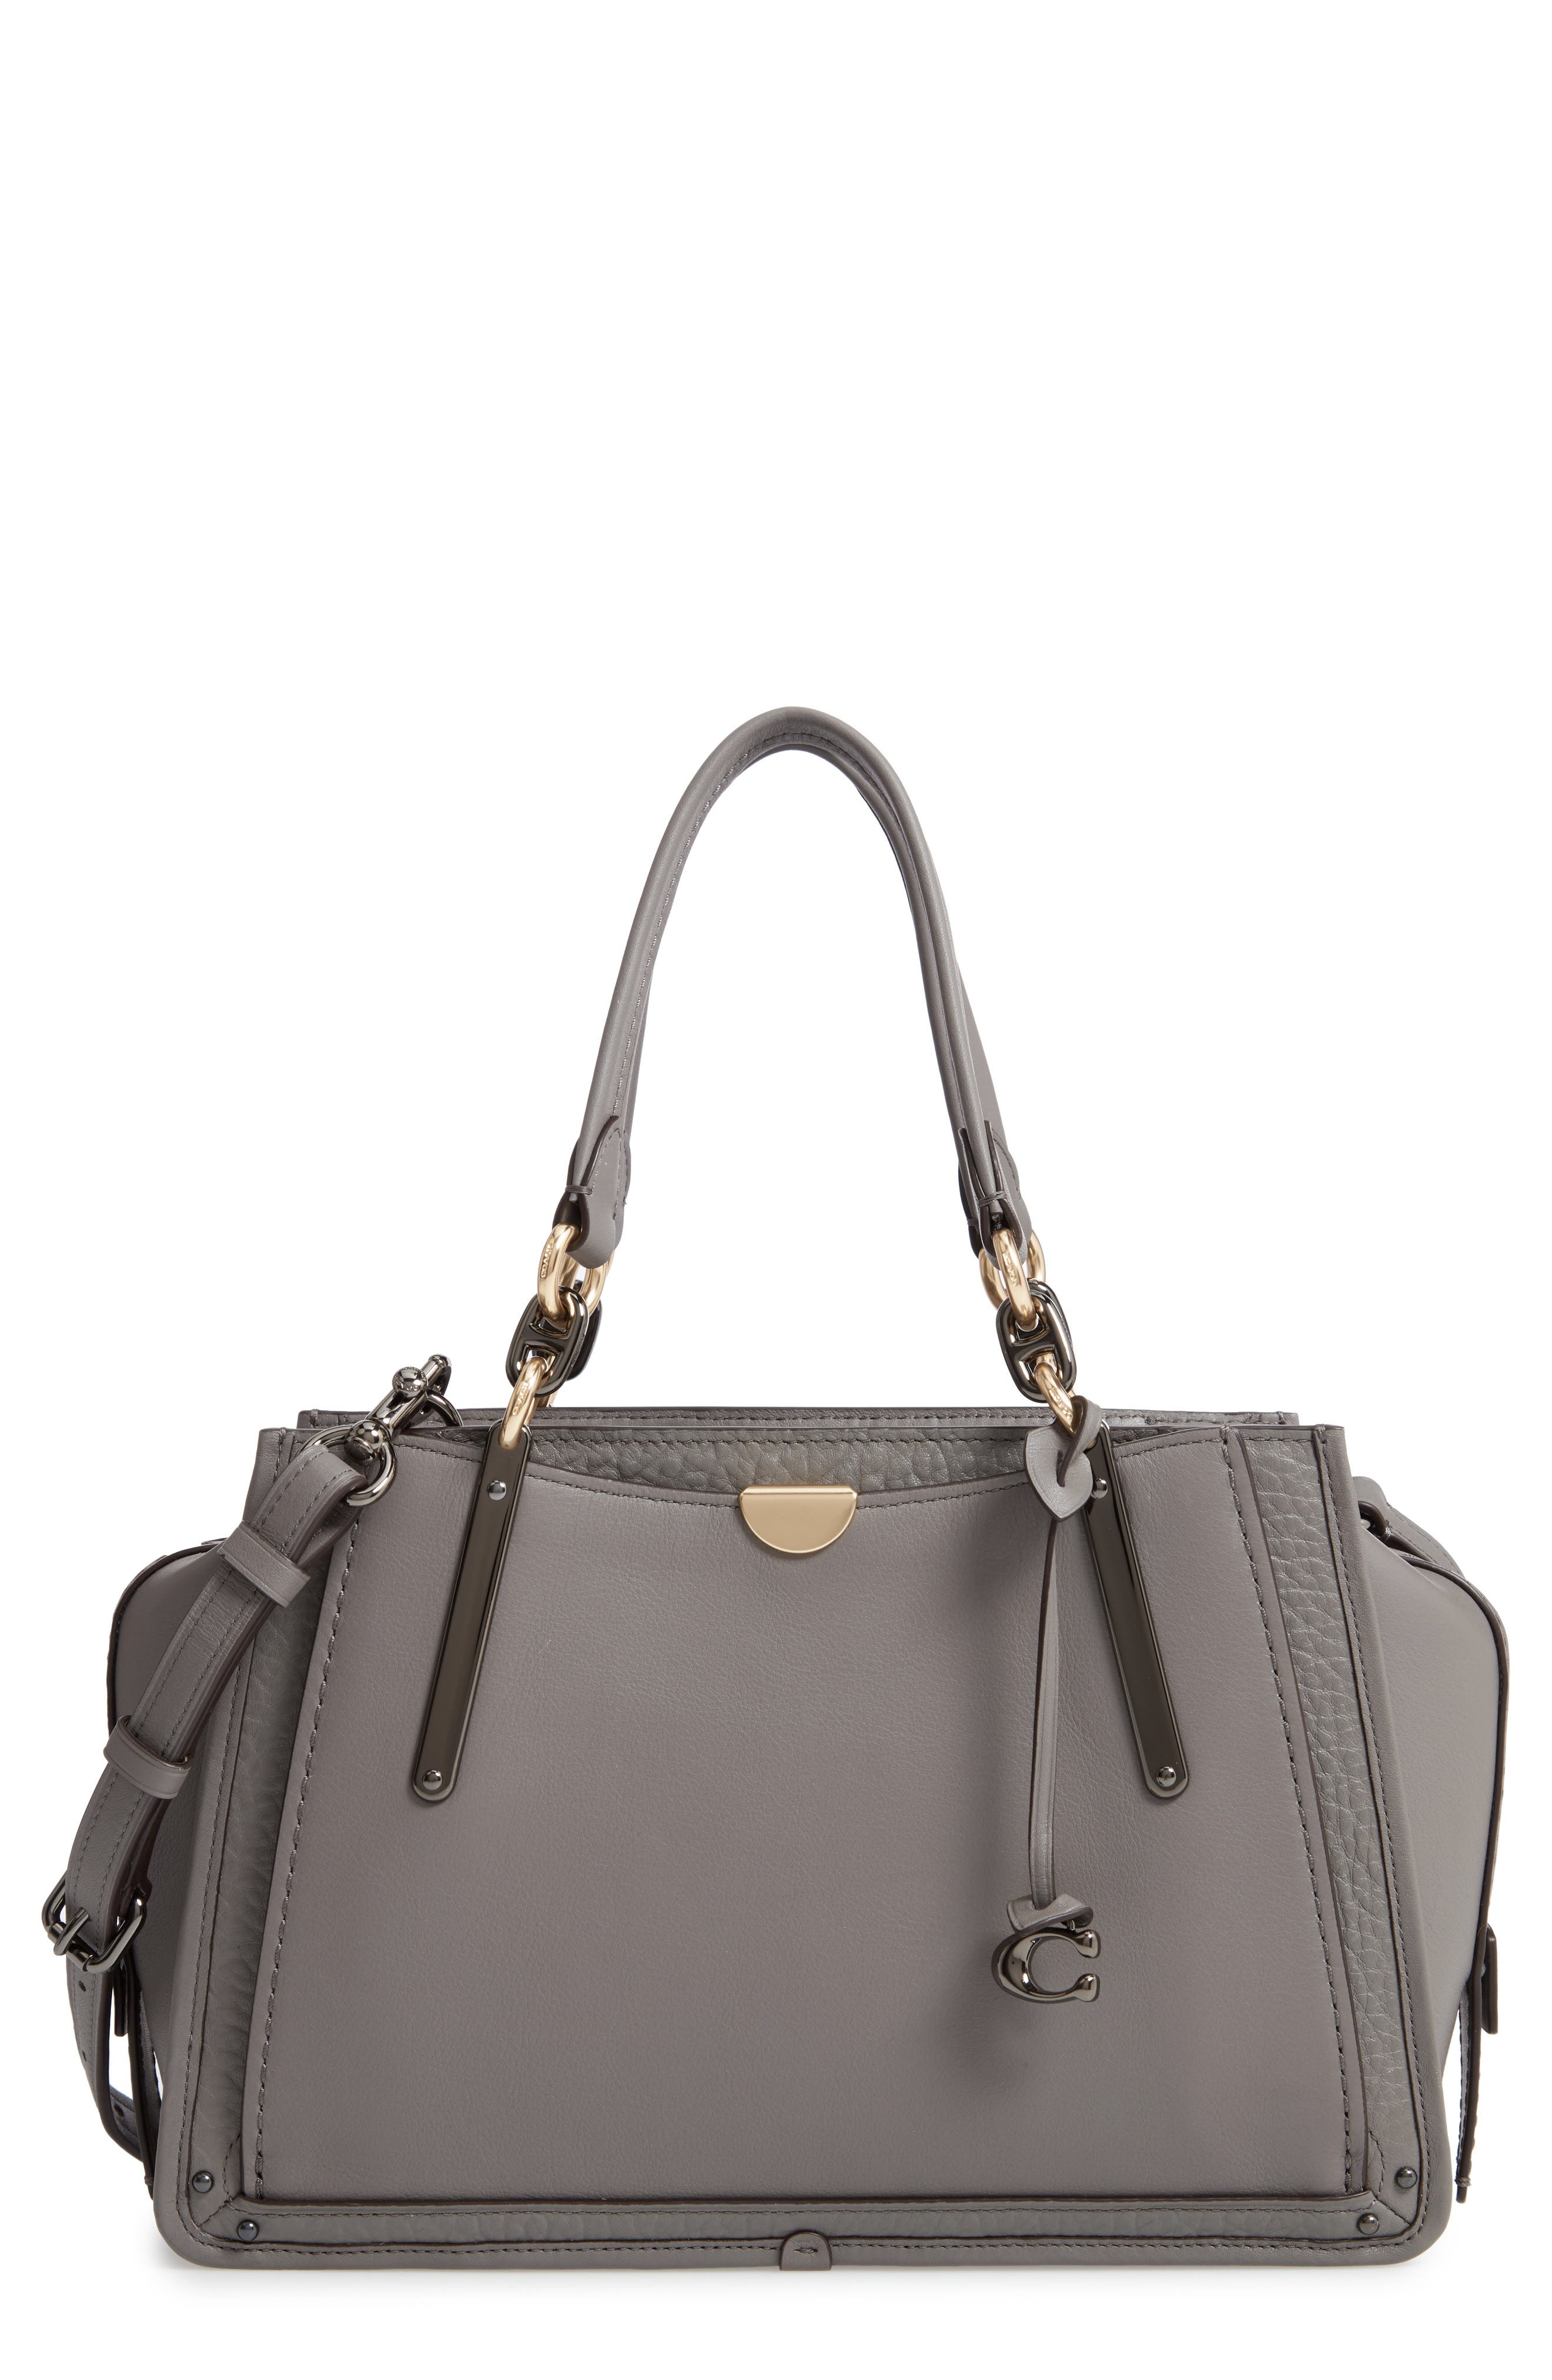 Dreamer Mixed Leather Bag,                         Main,                         color, HEATHER GREY